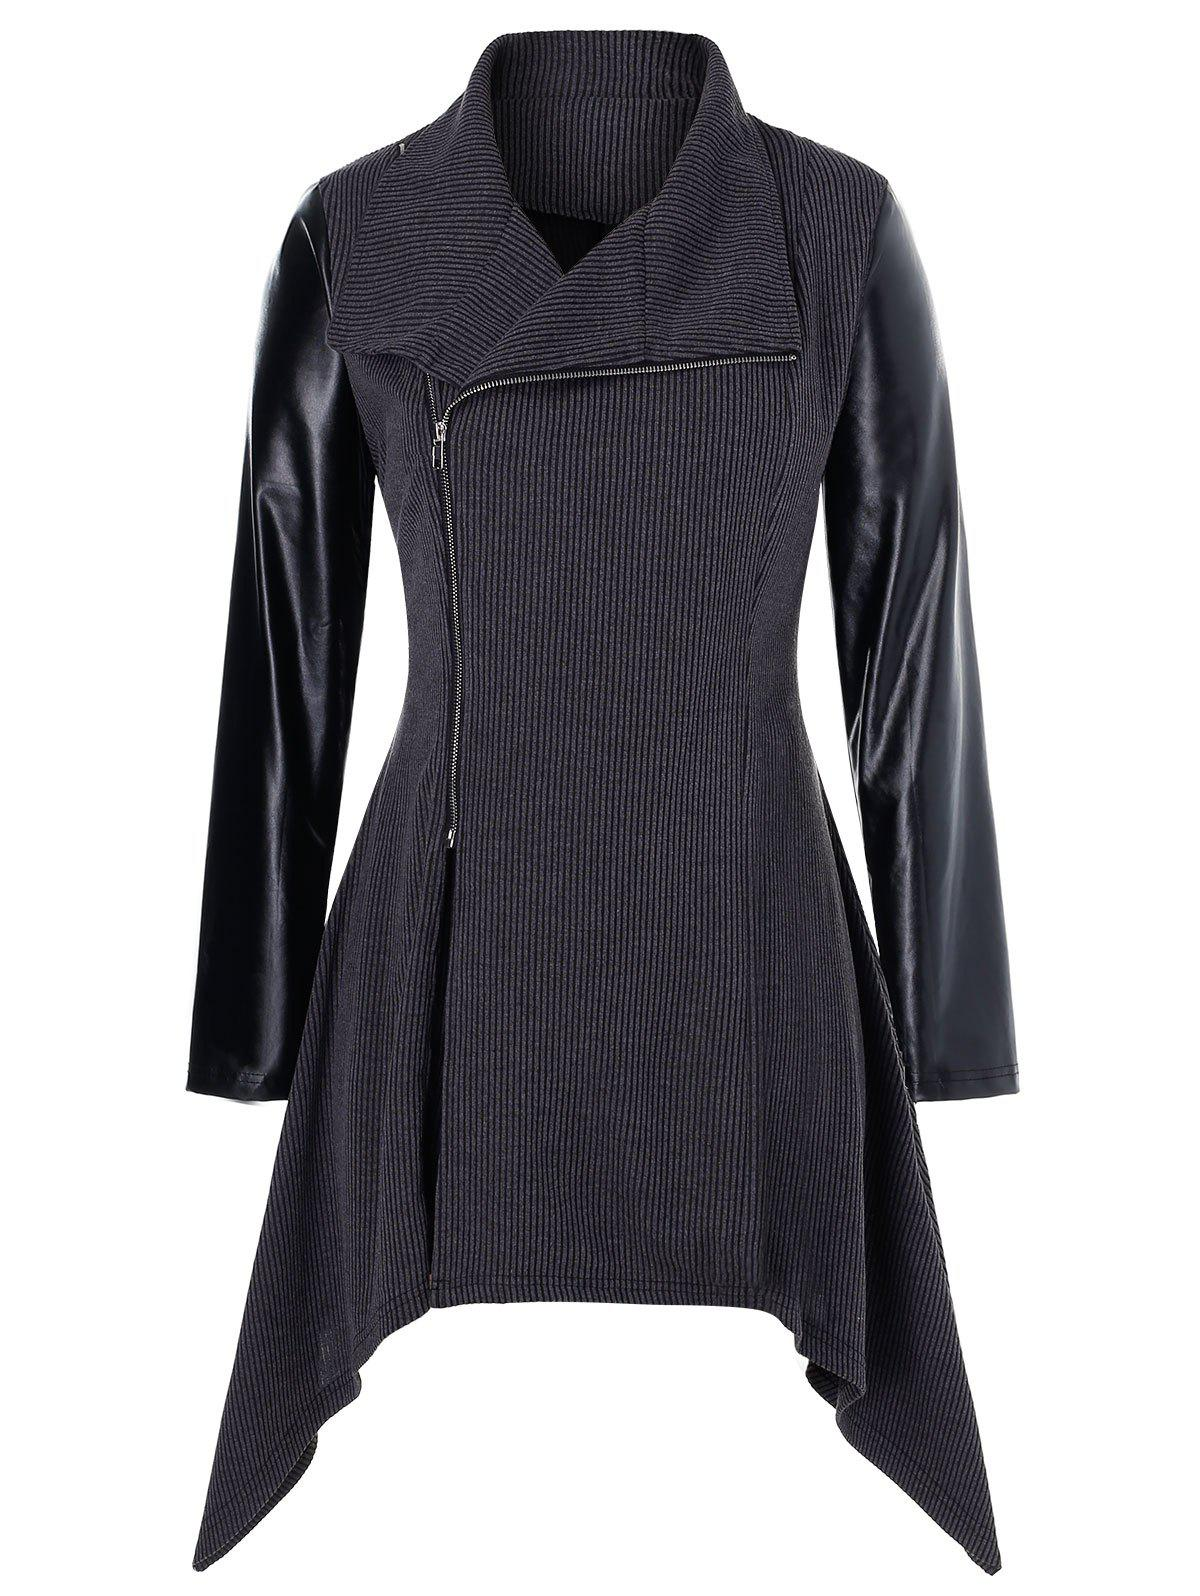 Plus Size Asymmetric PU Leather Panel Zip Knitted Coat - DARK SLATE GREY 4X